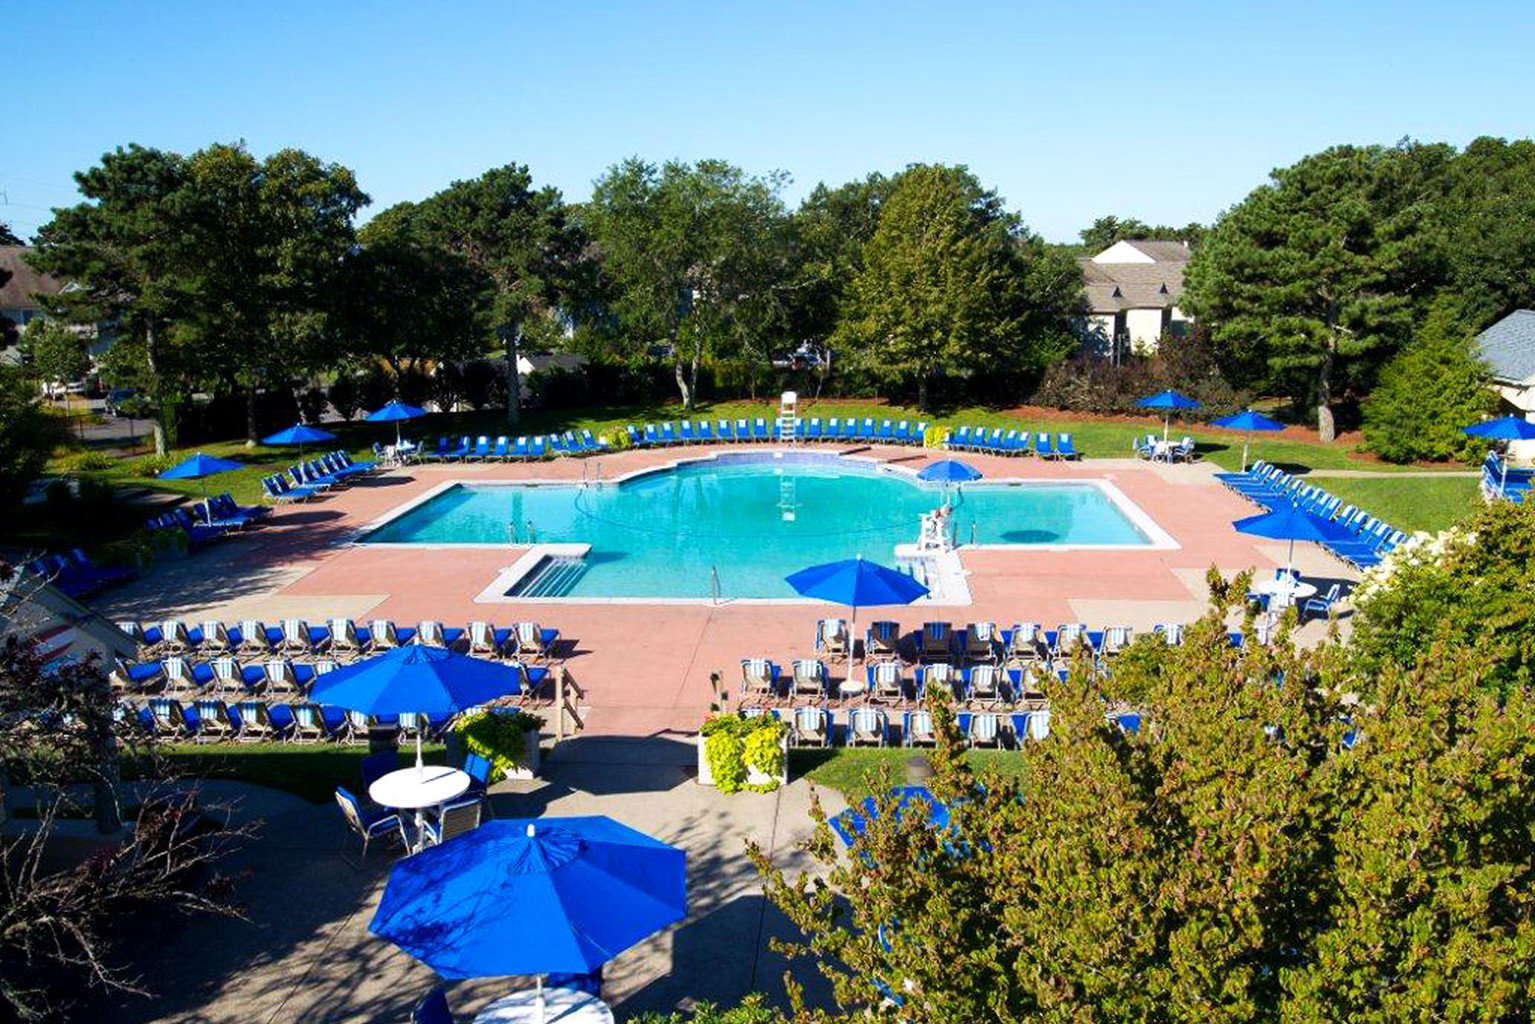 Family Grounds Pool Resort tree sky leisure swimming pool amusement park Water park park day